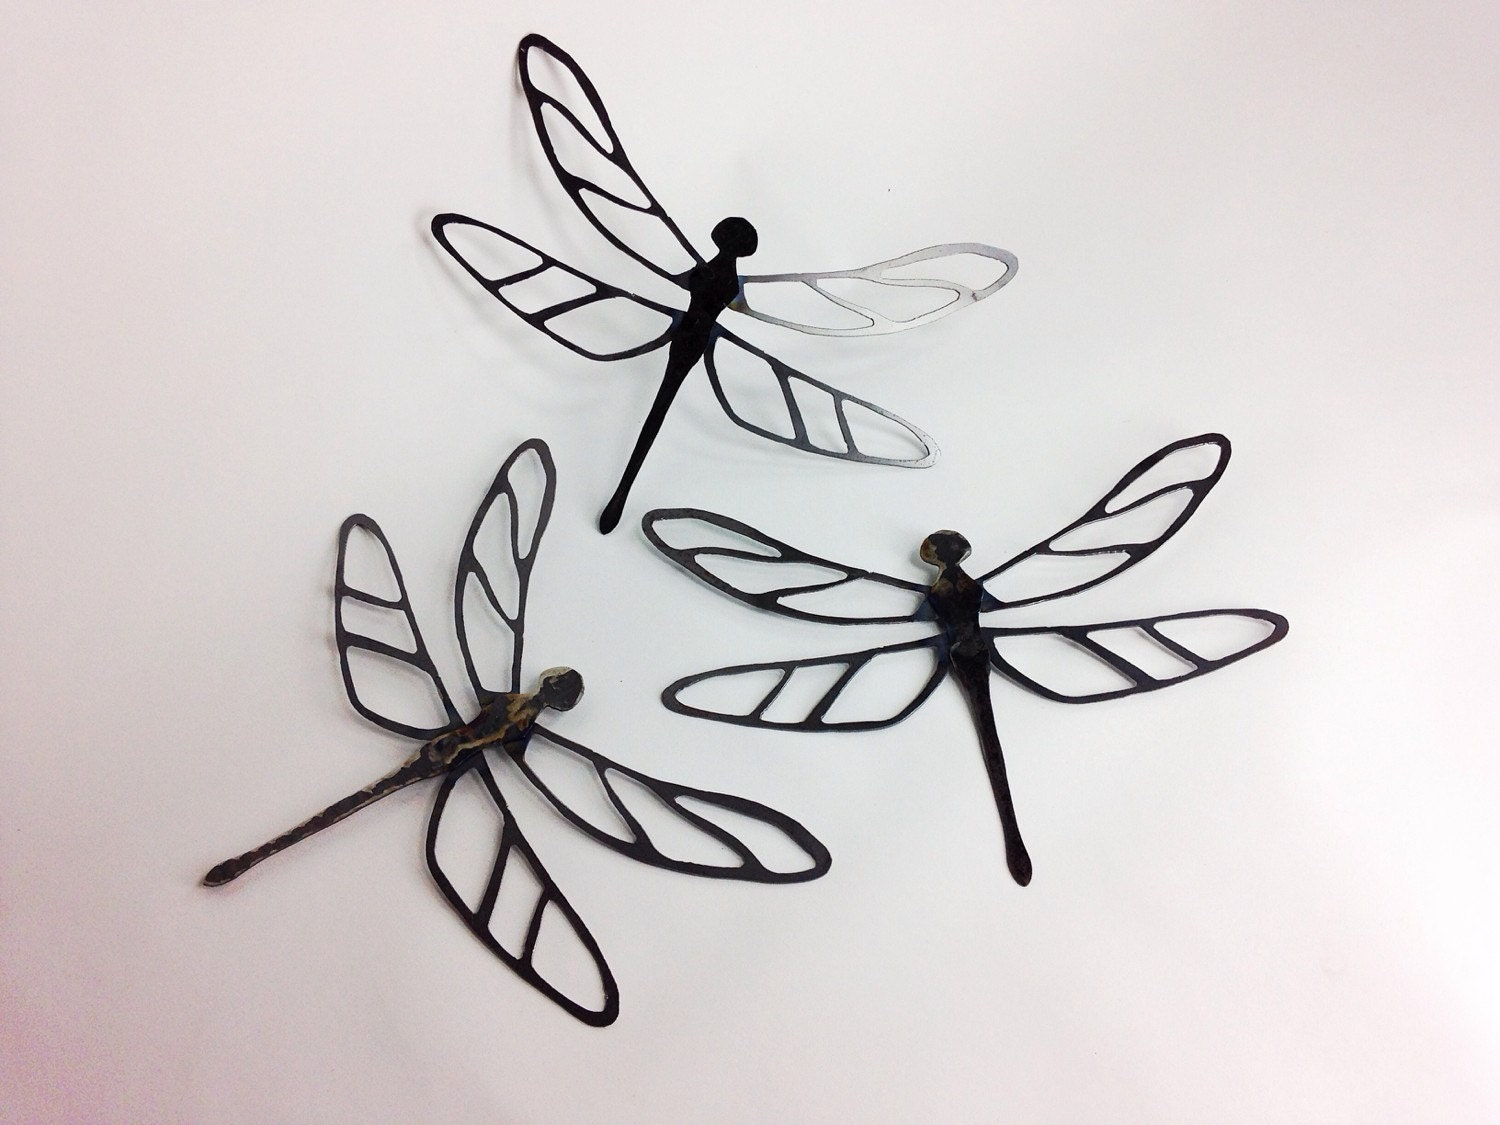 Metal Dragonfly Wall Hanging Art One Dragonfly By IronMaidArt